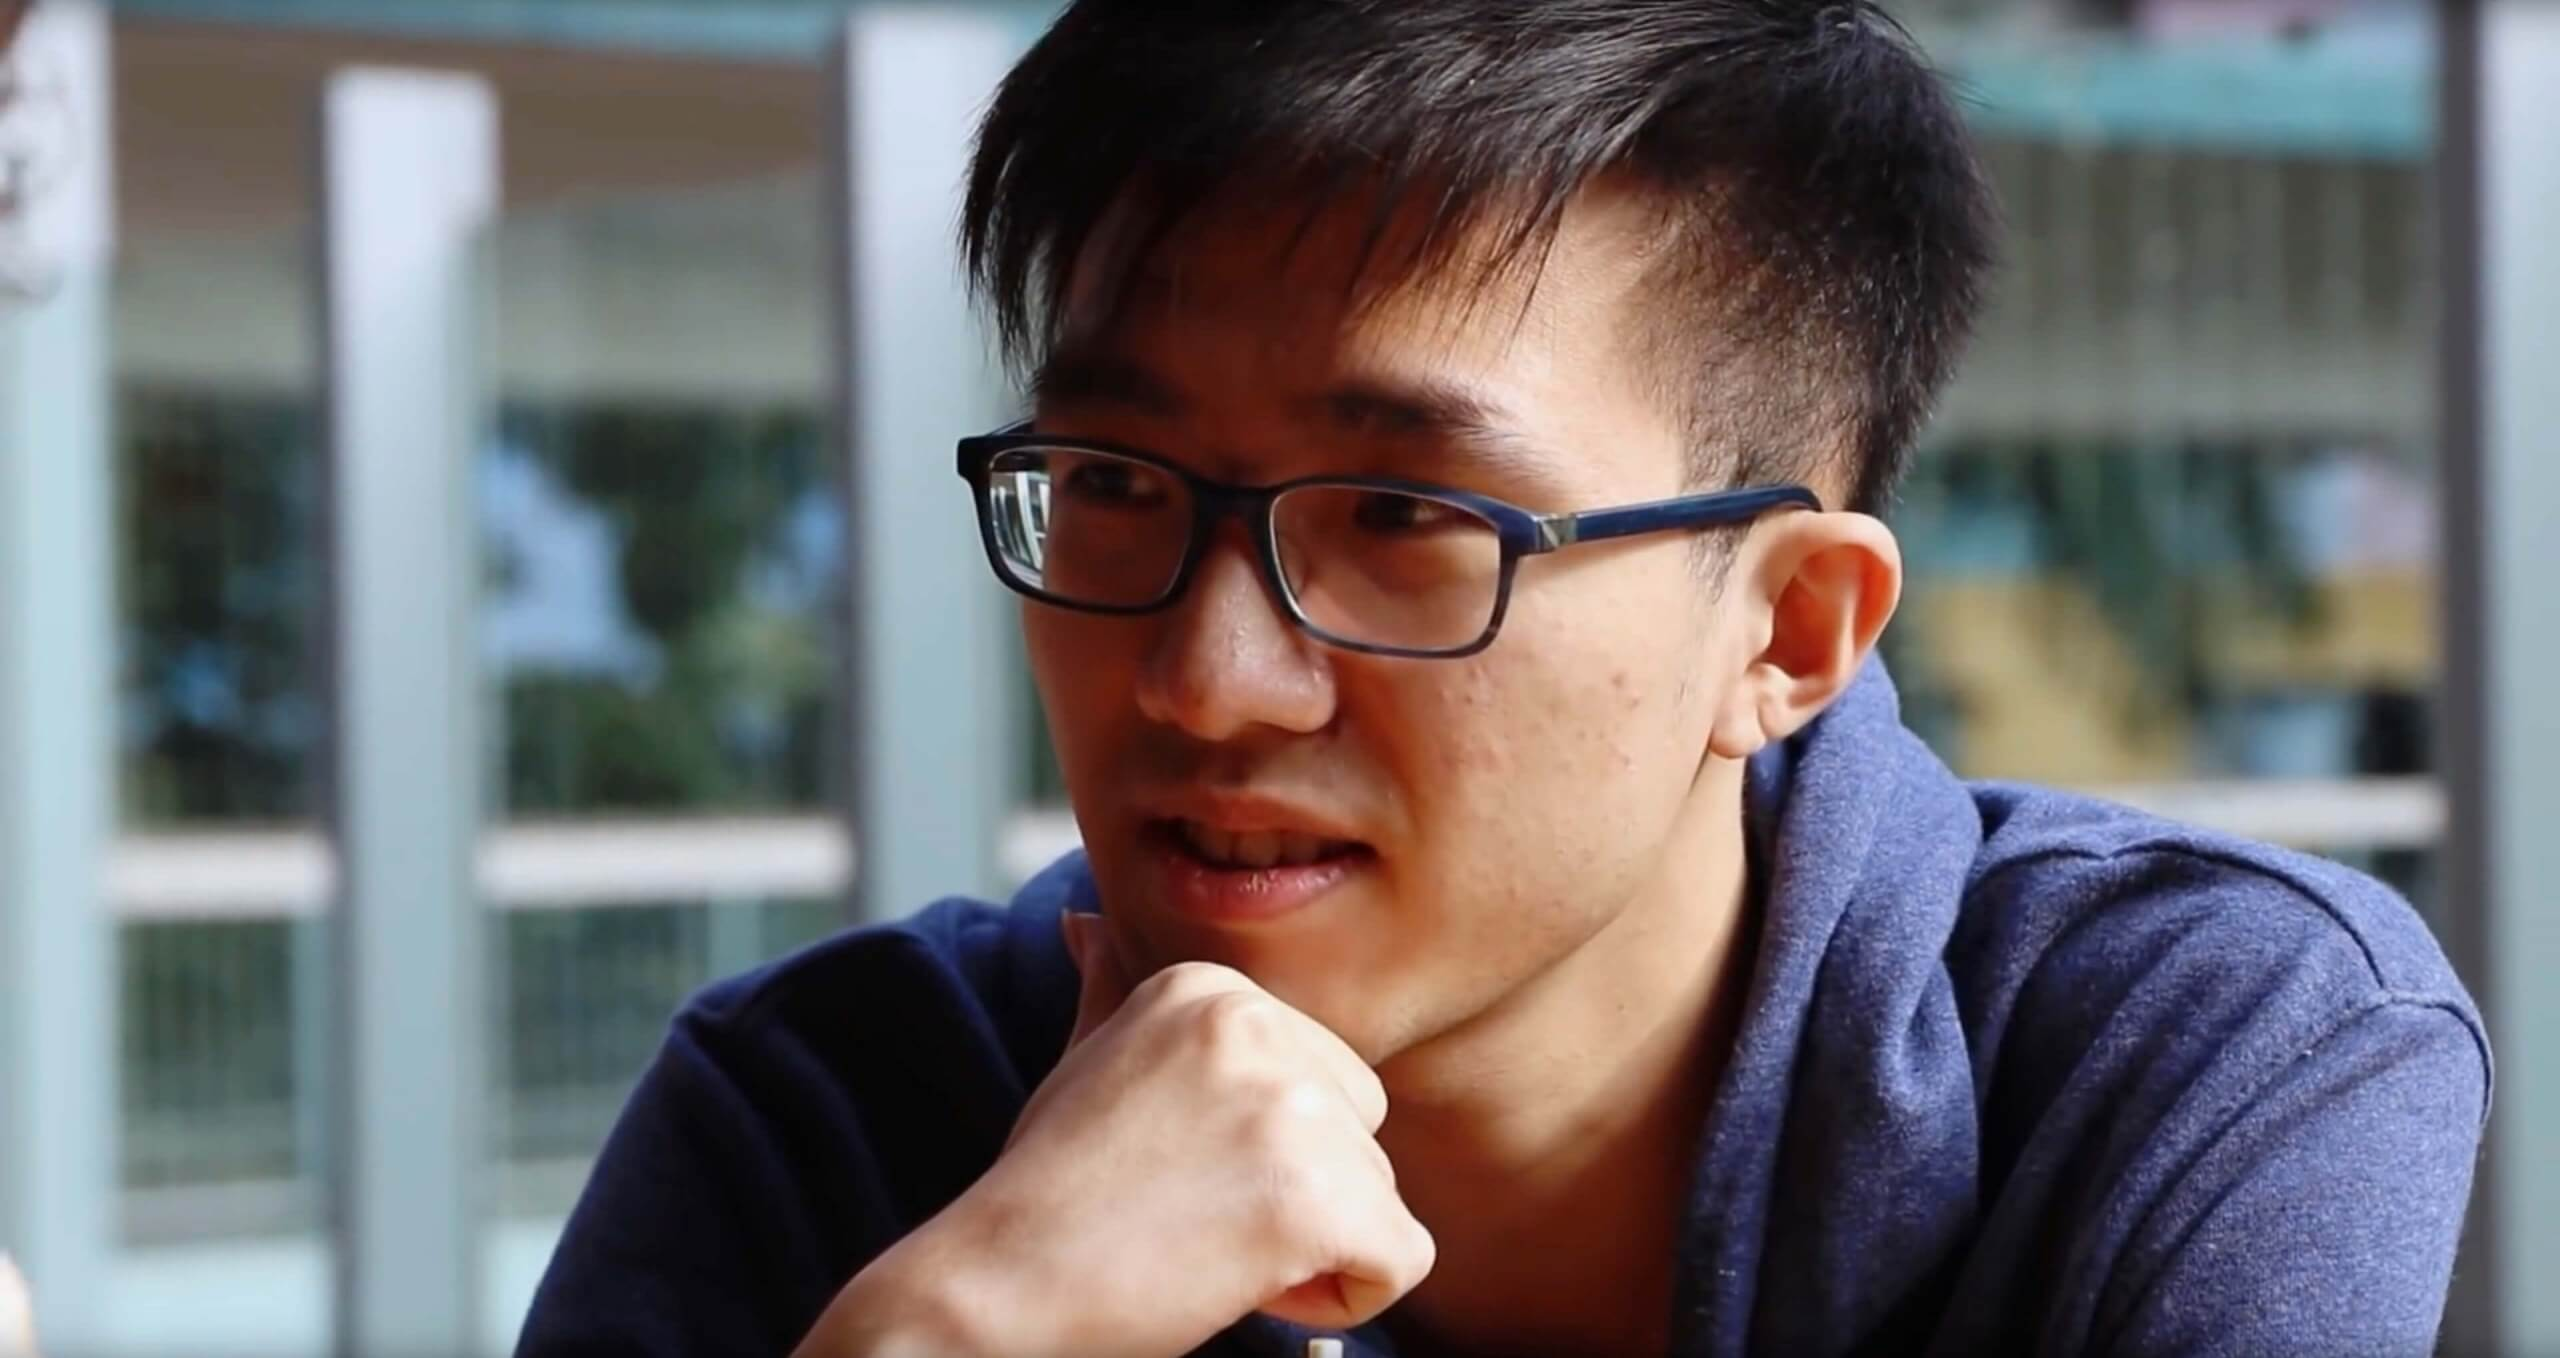 Hearthstone pro Blitzchung says he would face suspension again for Hong Kong